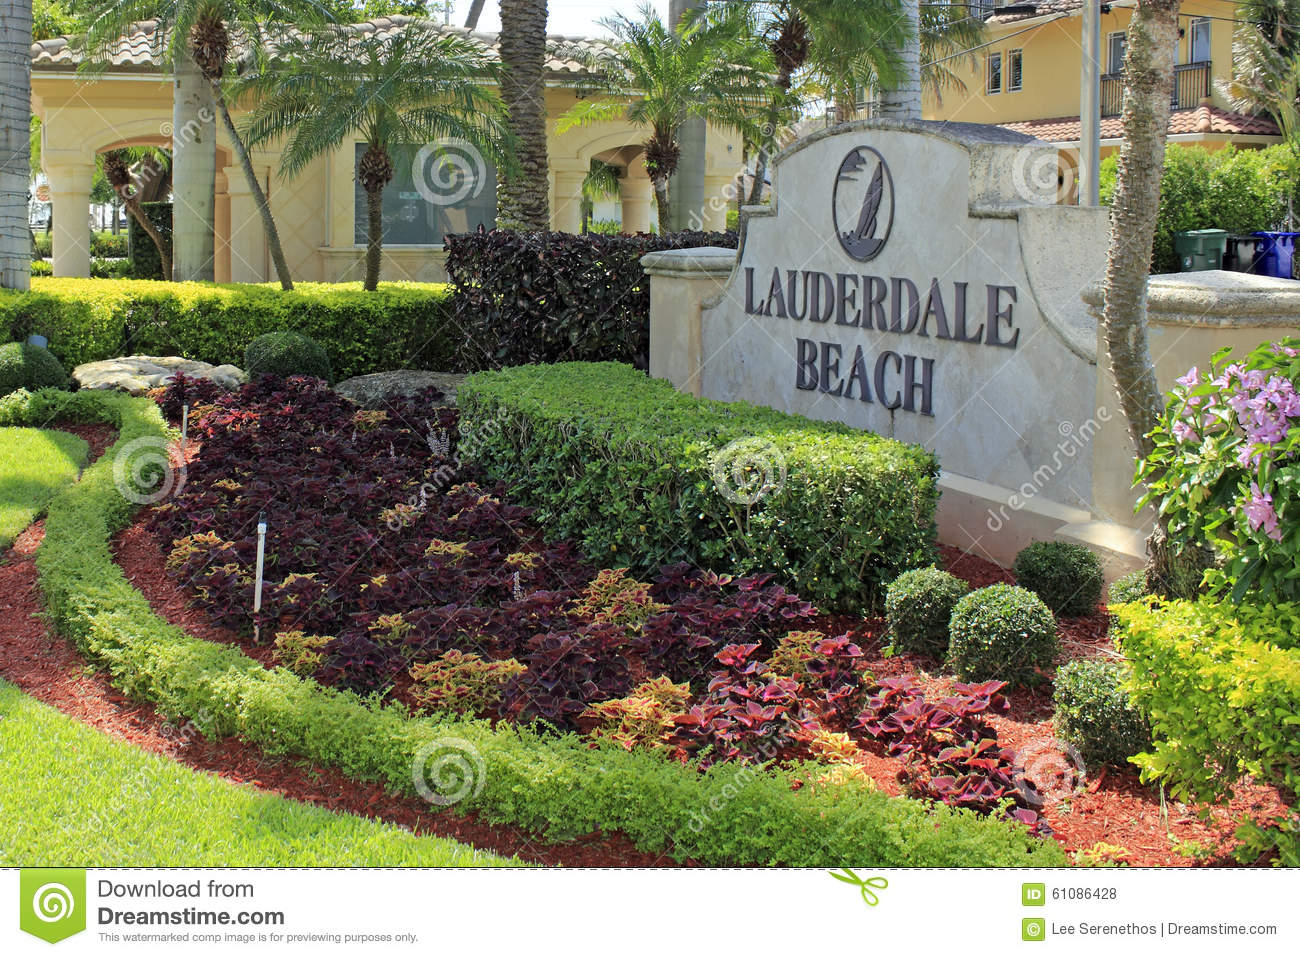 Lauderdale beach entry sign editorial image for Landscaping rocks fort lauderdale